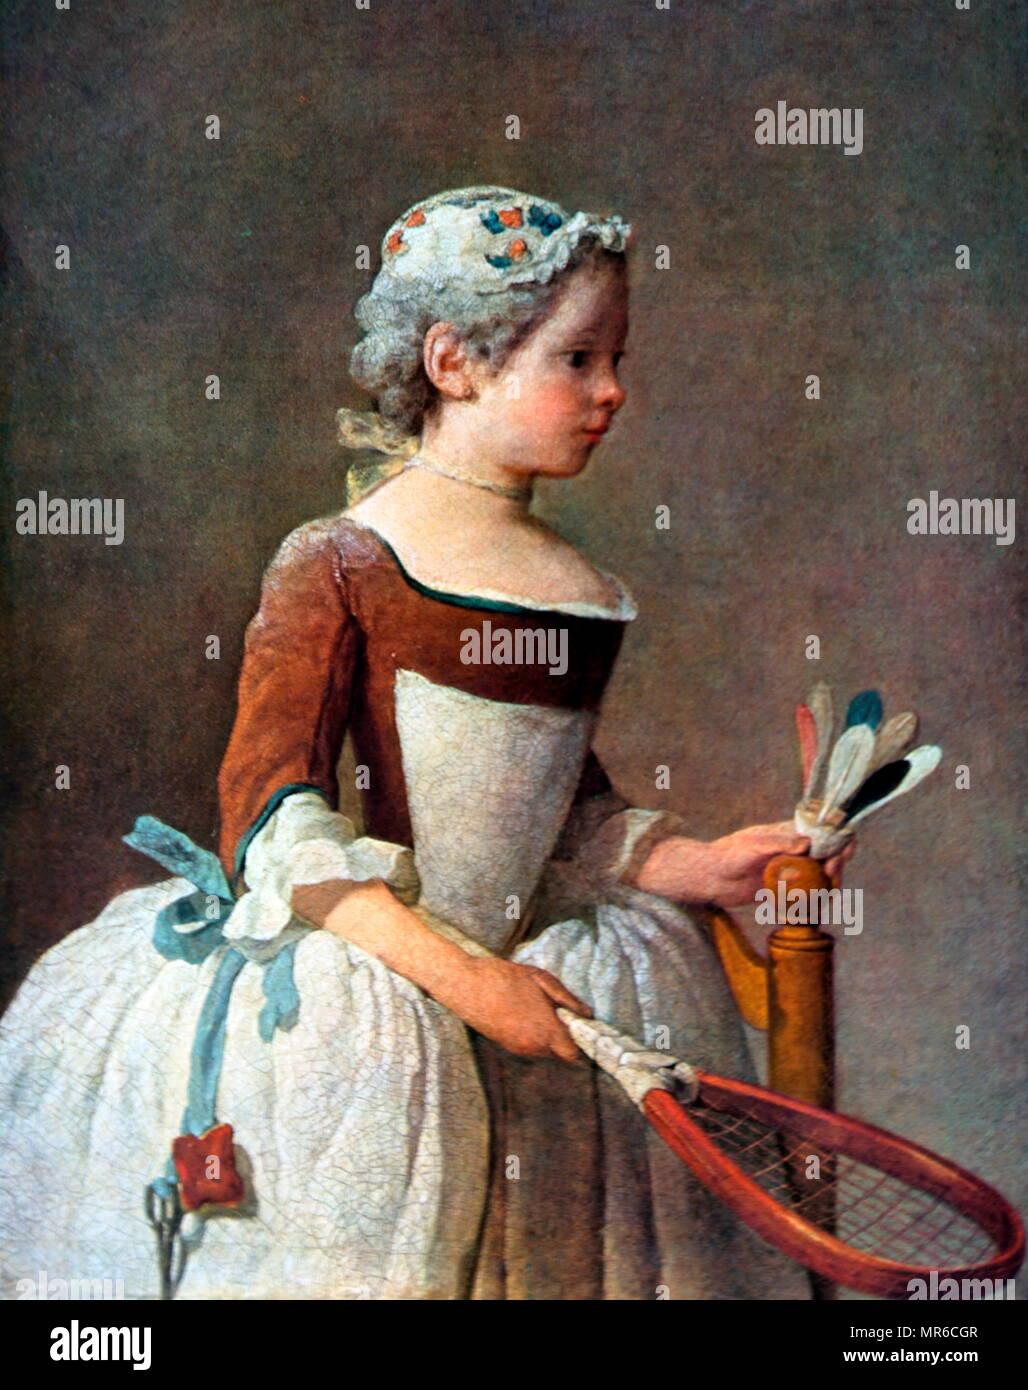 Girl with Racket and Shuttlecock circa 1740 by Jean-Baptiste-Simeon Chardin. Style of painting is Rococo - Stock Image